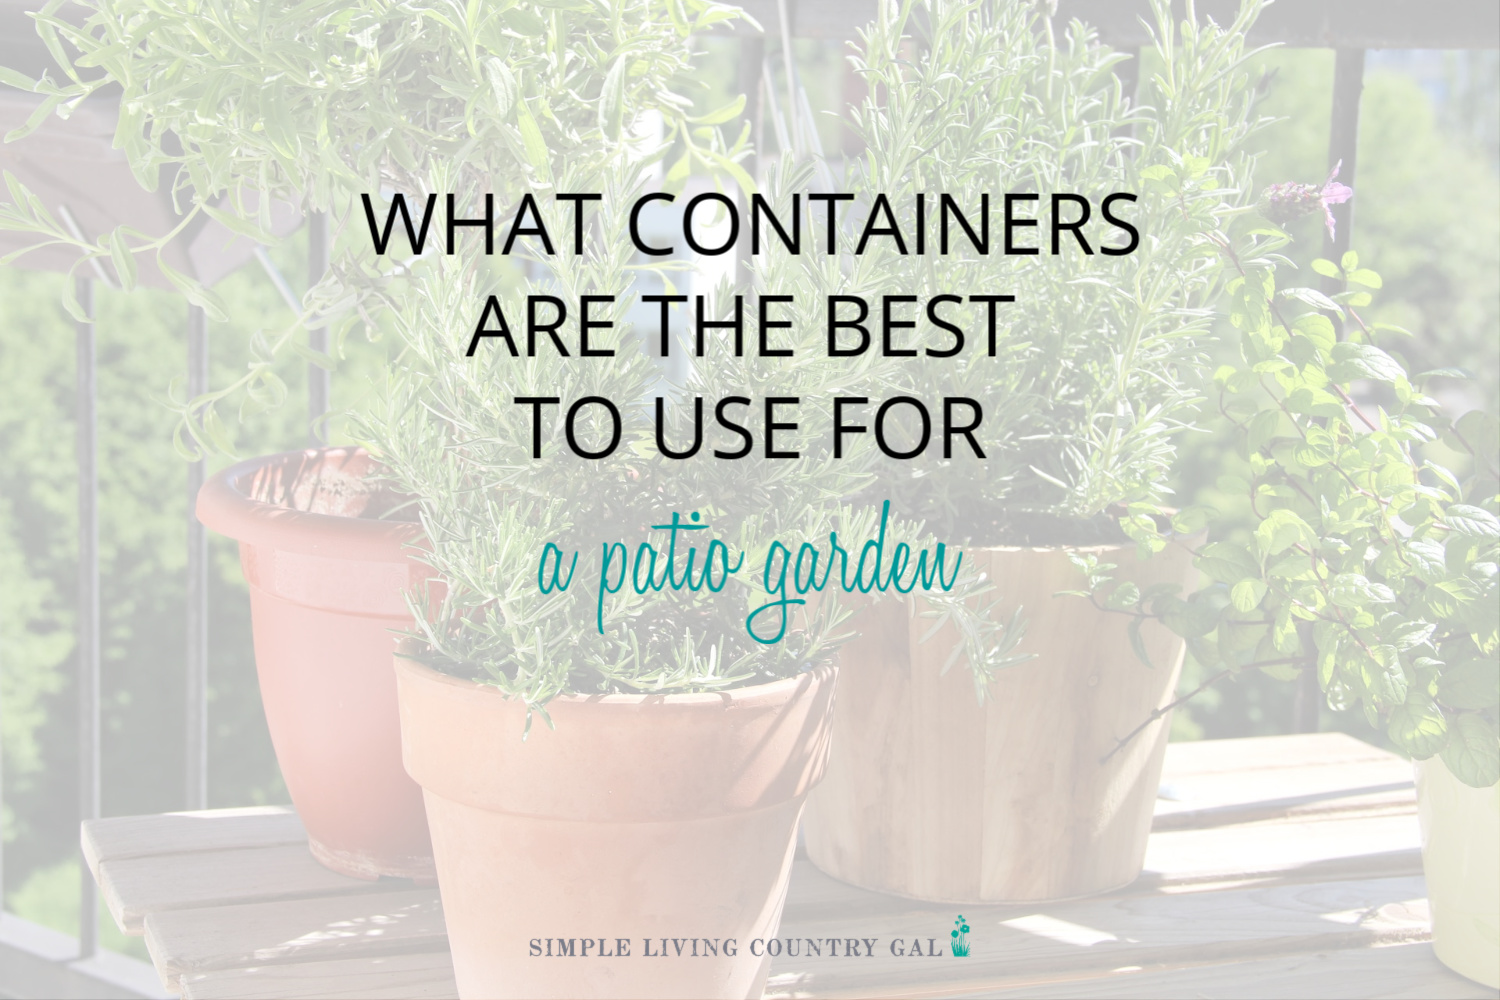 What containers work best for a patio garden?